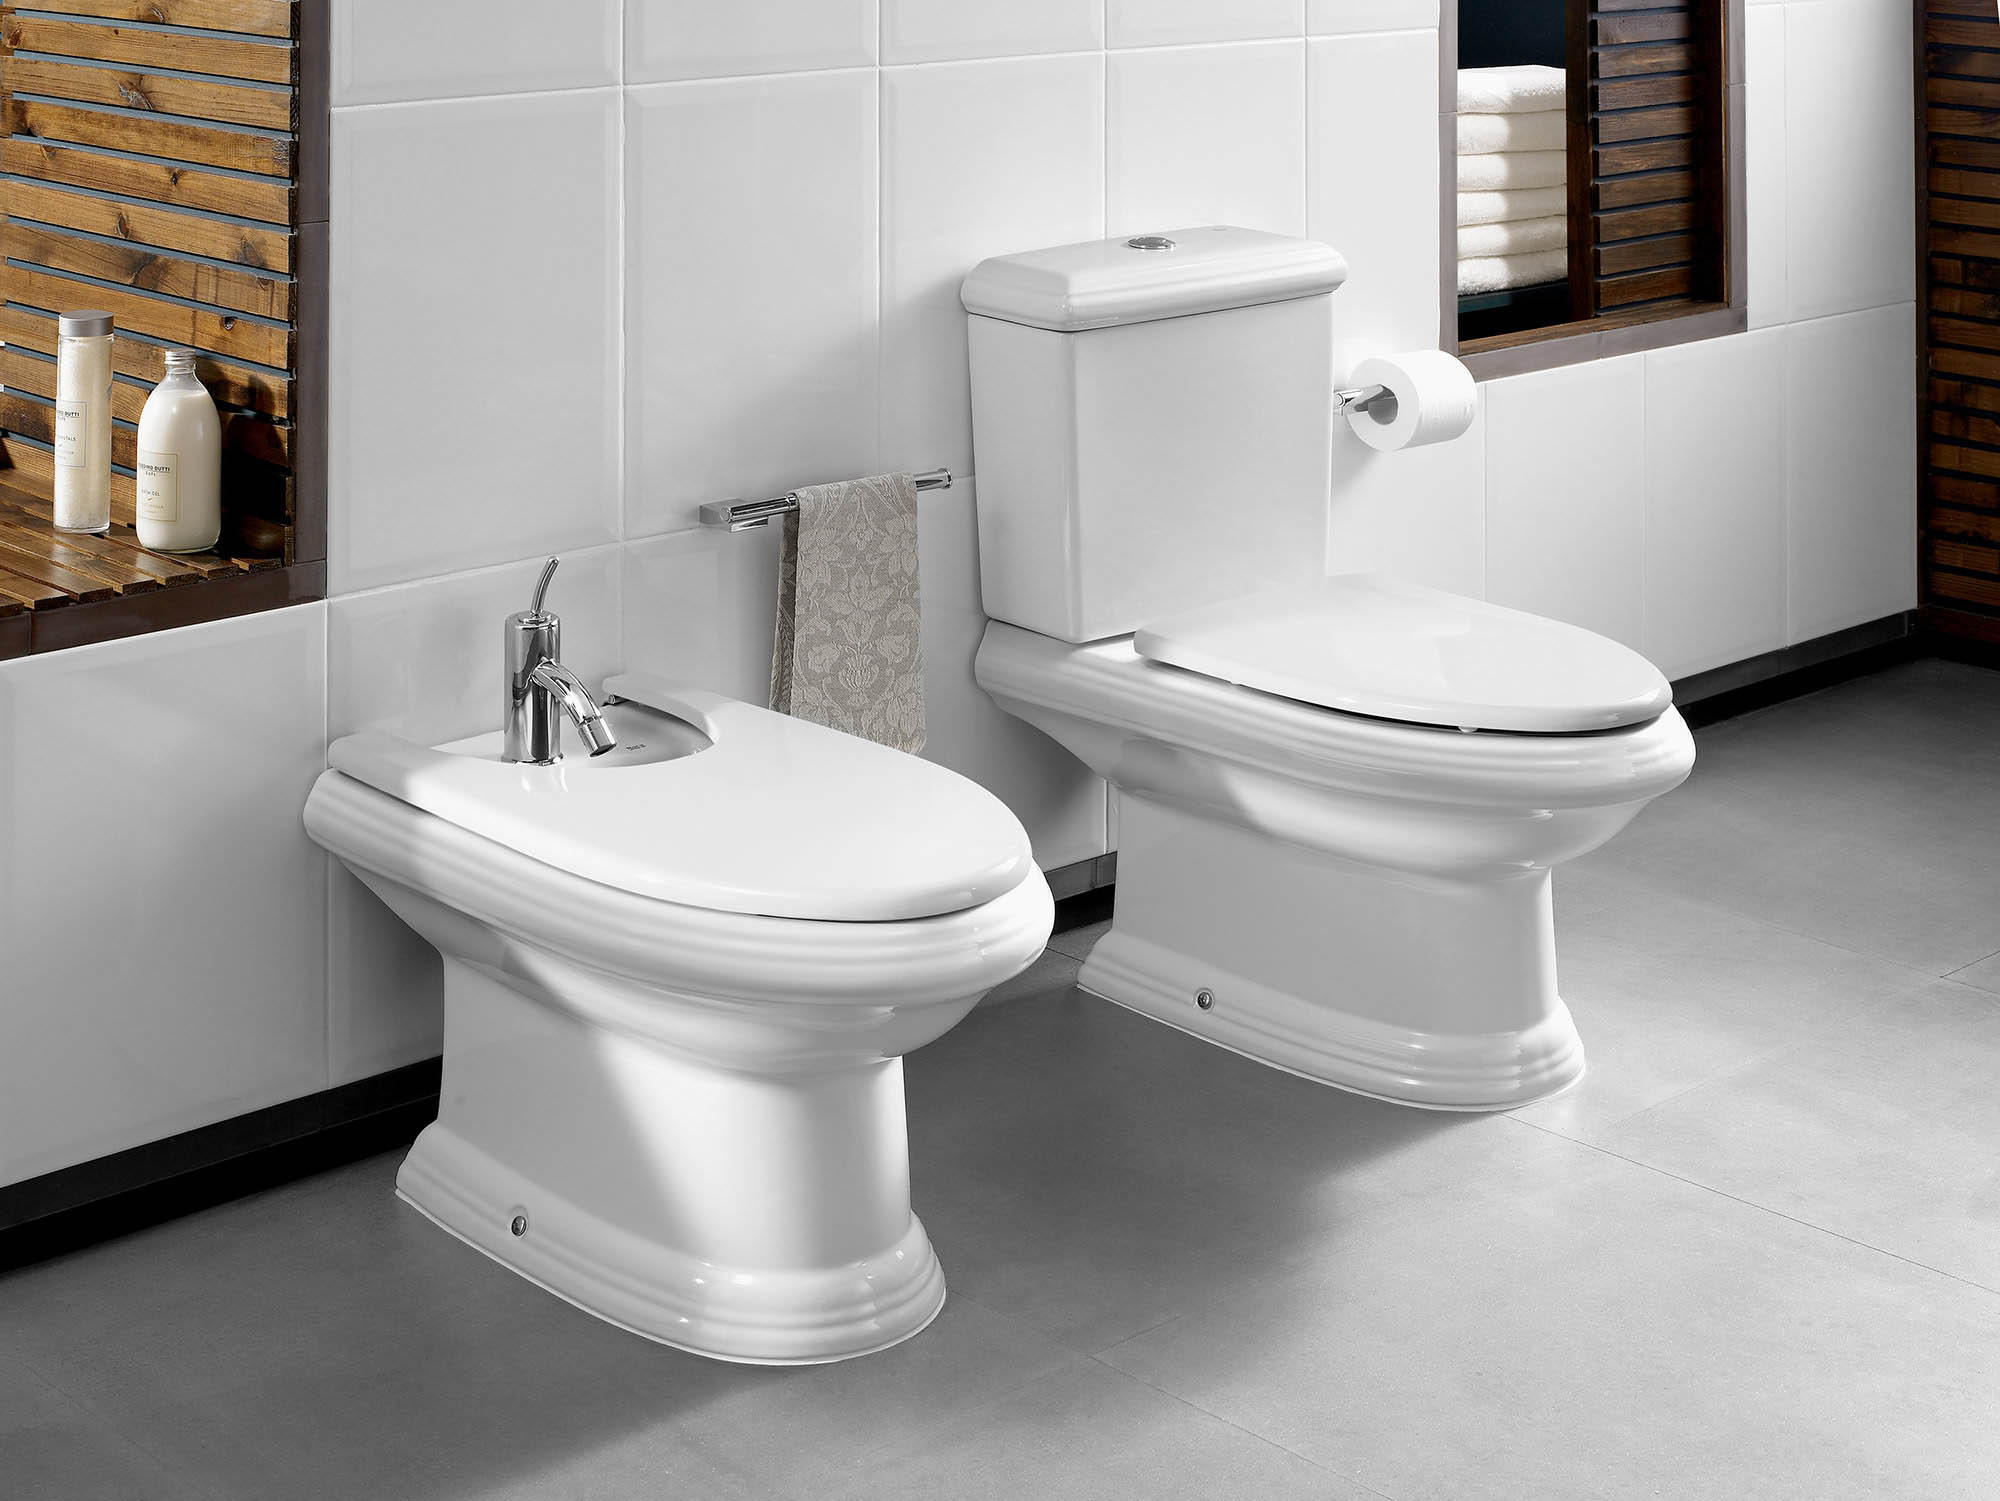 What Is A Bidet | What Do They Do & How Do You Use It?